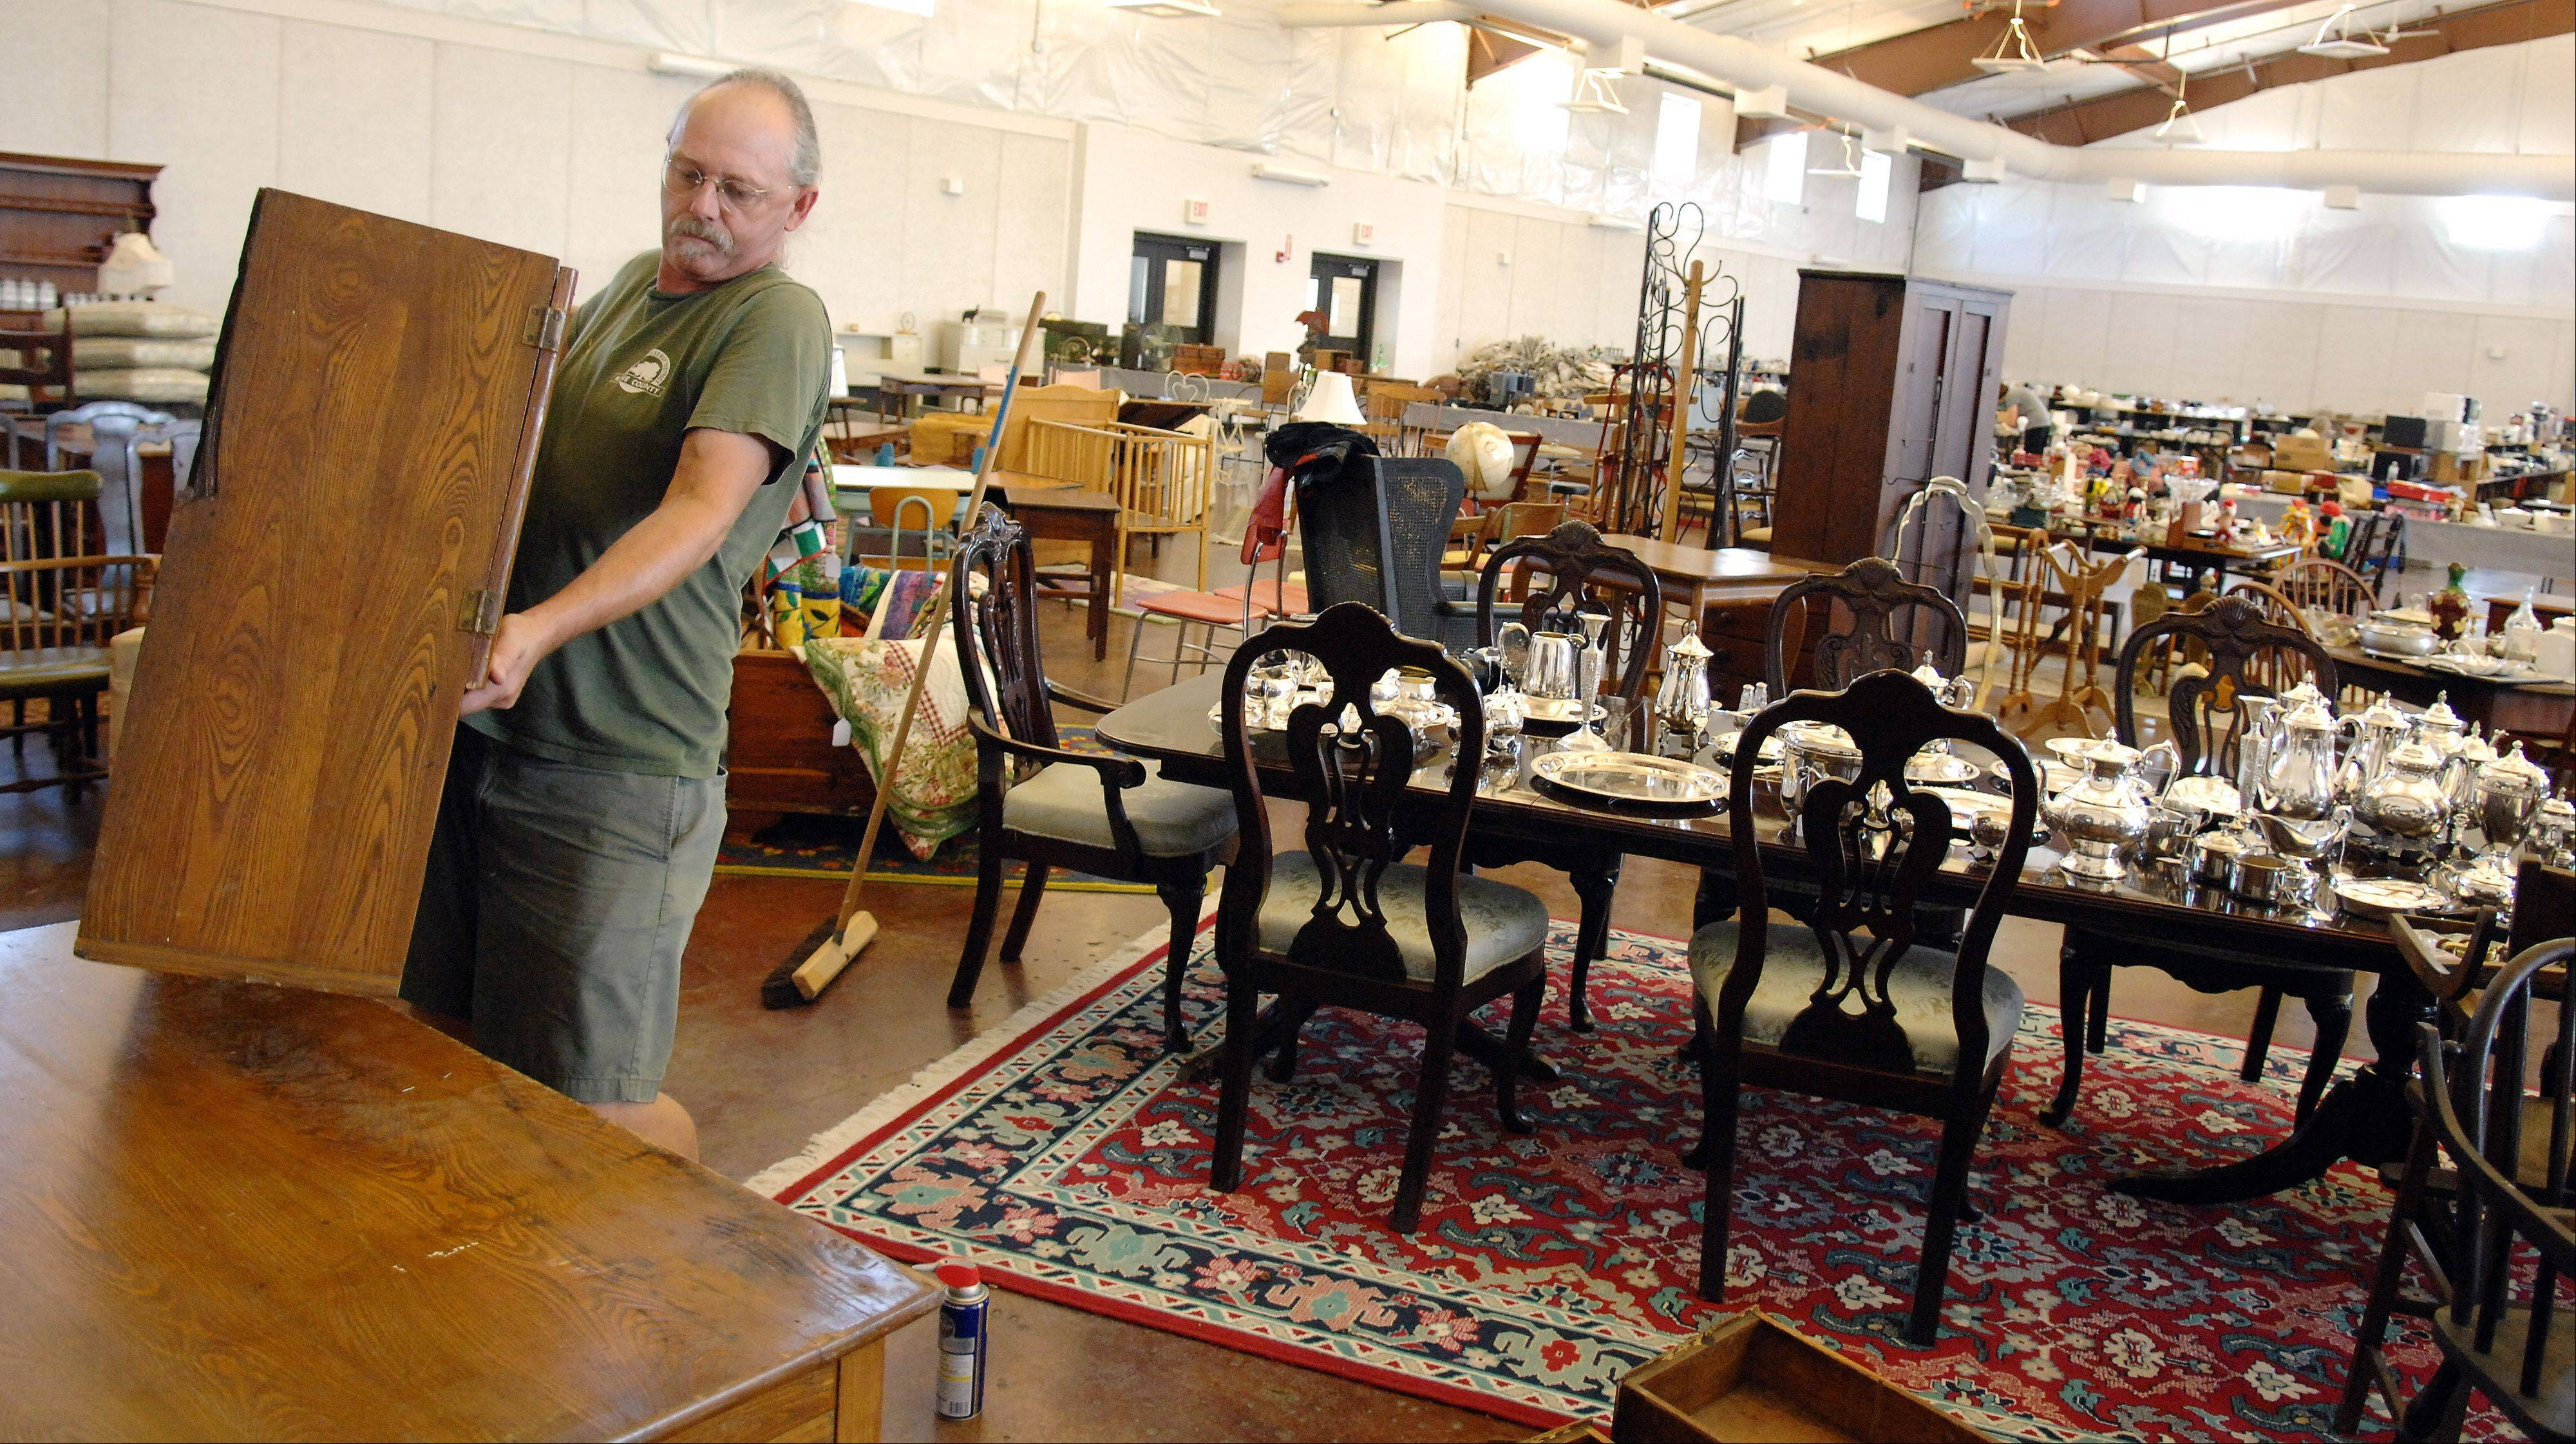 Jeff Ralston places a hutch on top of a desk this week as he helps set up for the St. Peter Barn Sale coming up Saturday and Sunday at the Kane County Fairgrounds in St. Charles.